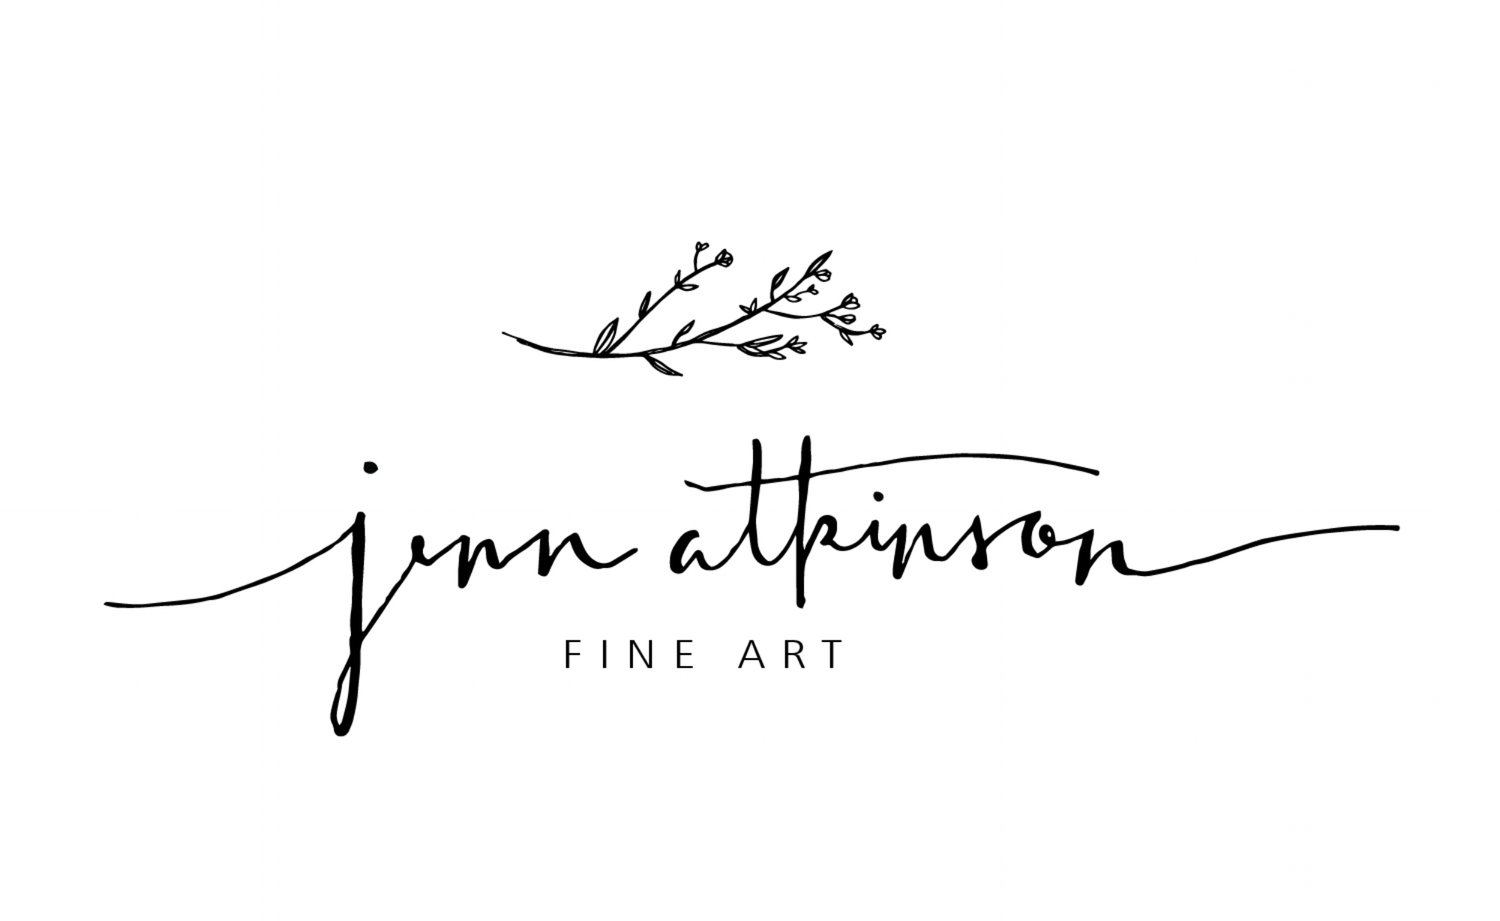 Jennifer Atkinson Fine Art